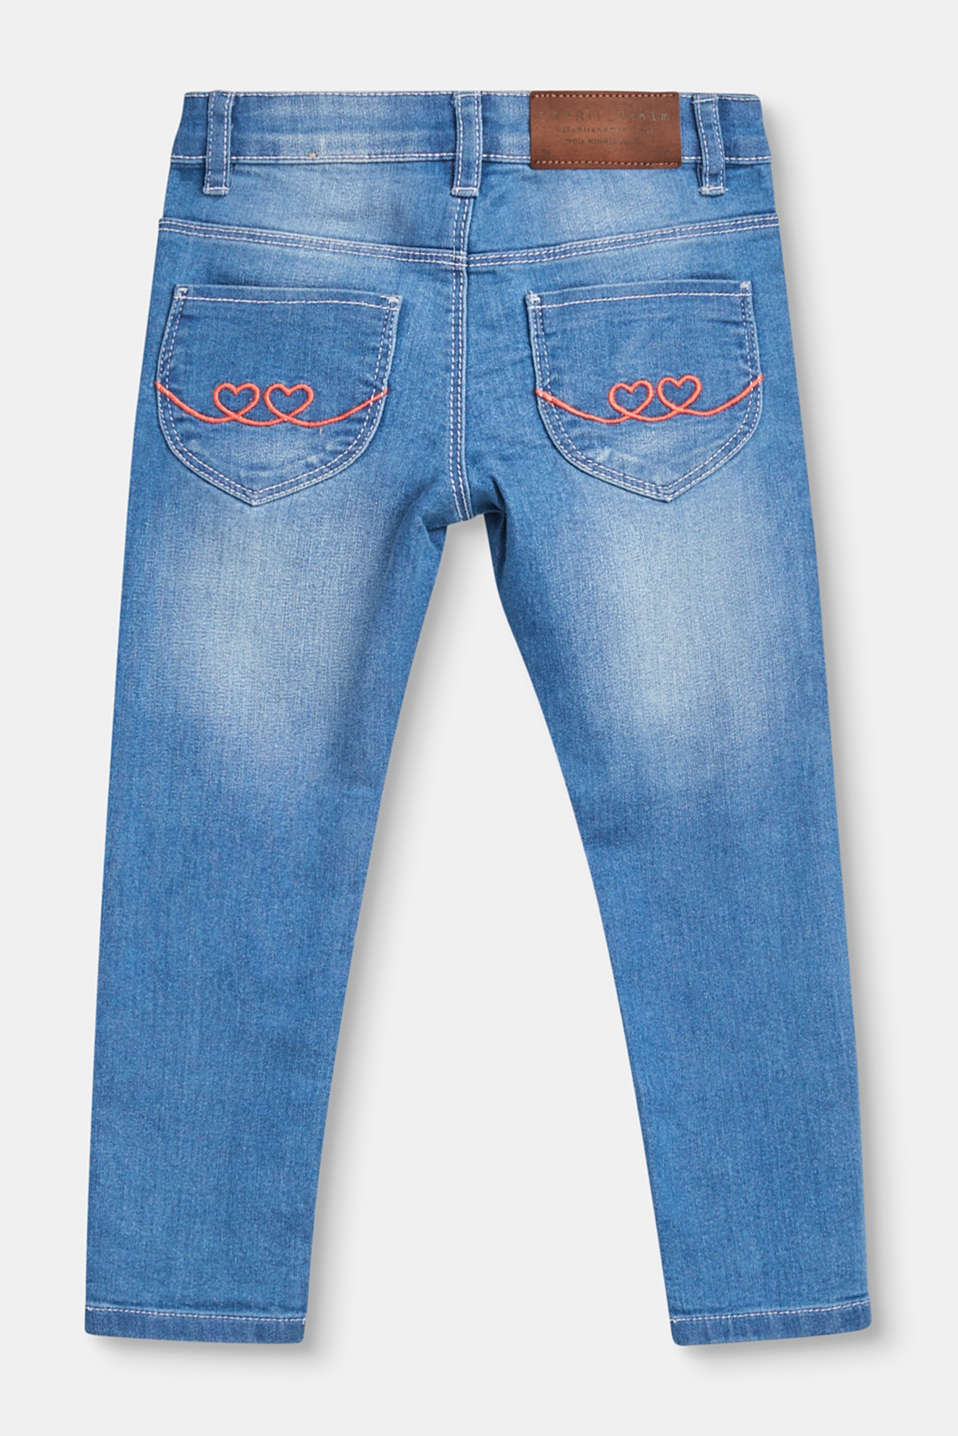 Stretch jeans with a subtle garment-washed finish